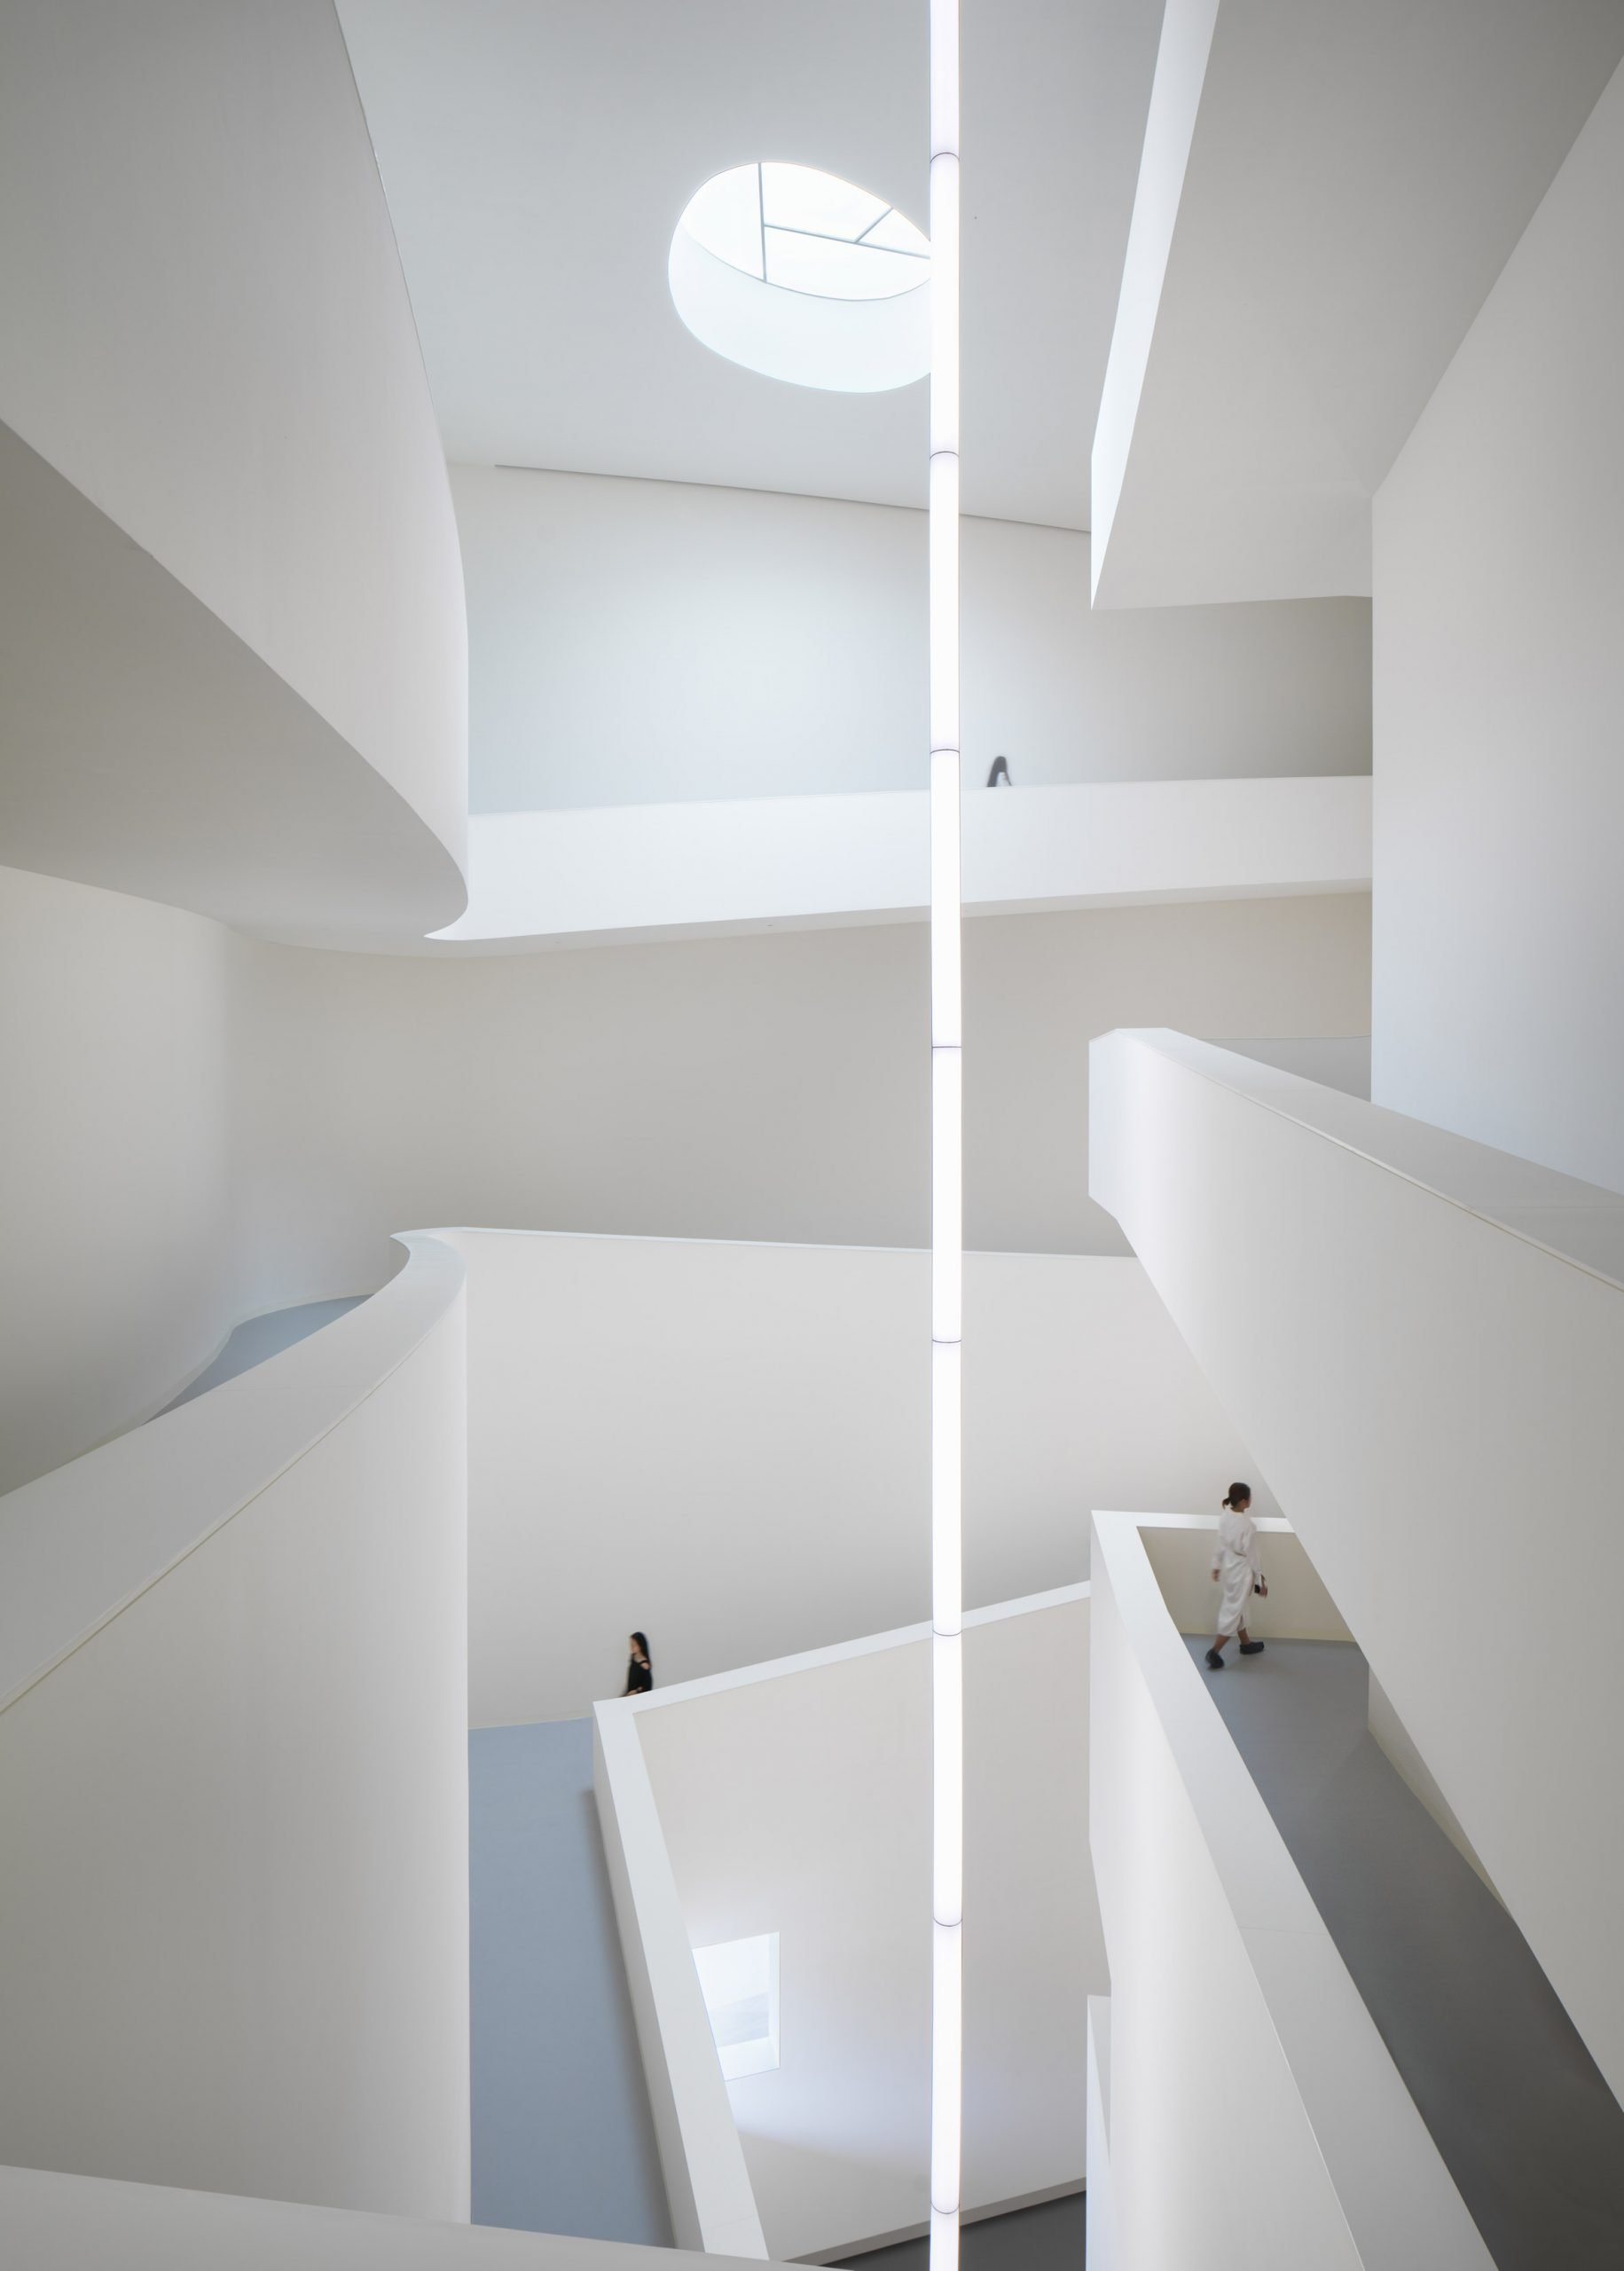 The central void inside Humao Museum of Art and Education by Álvaro Siza and Carlos Castanheira